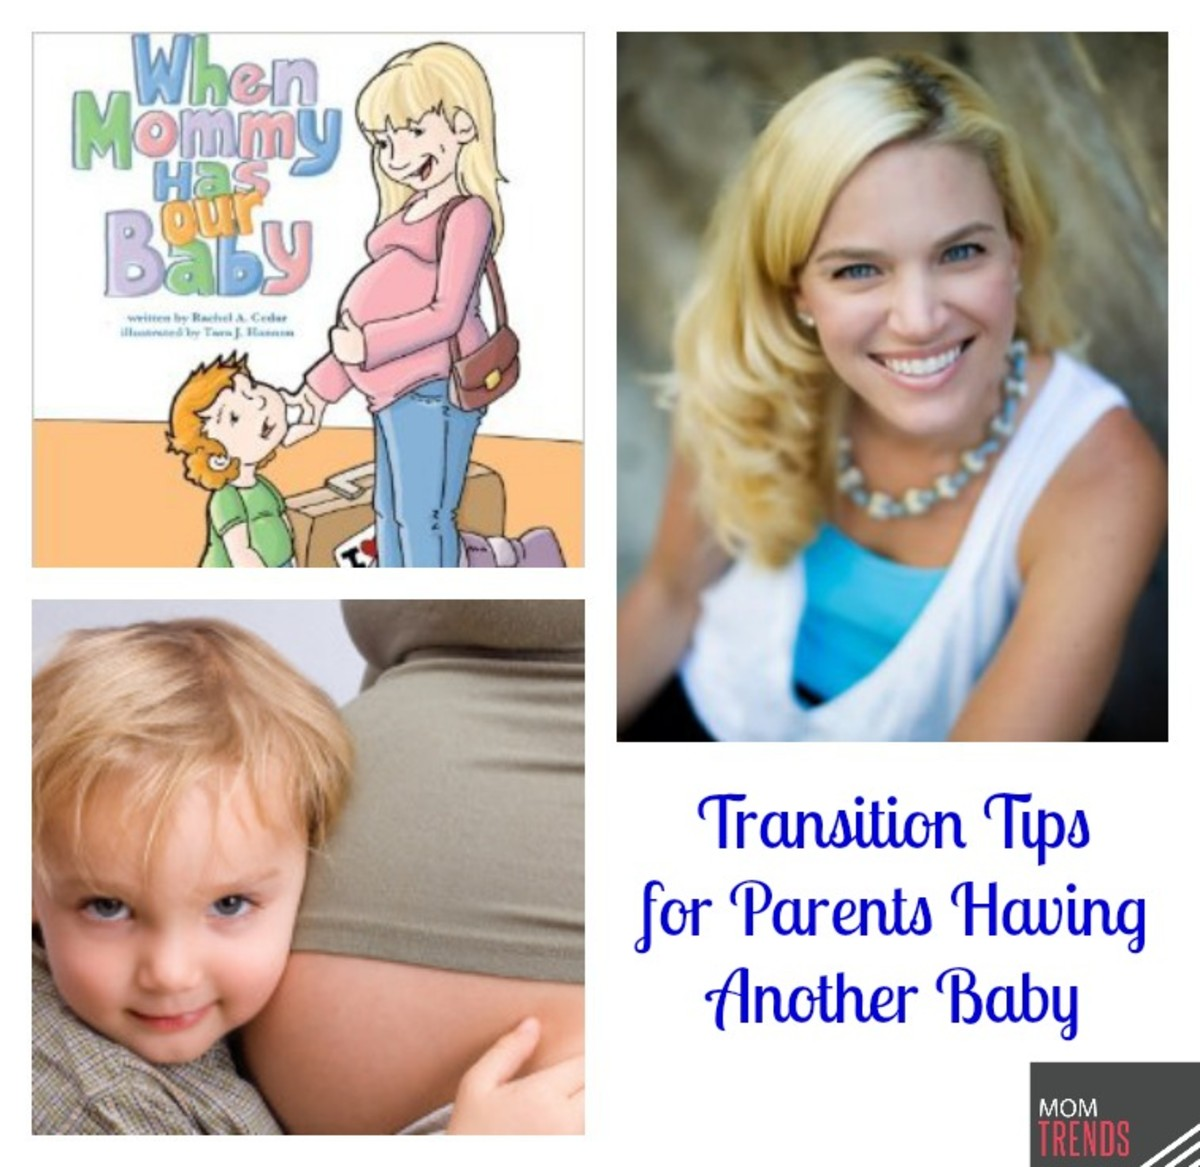 Transition Tips for Parents